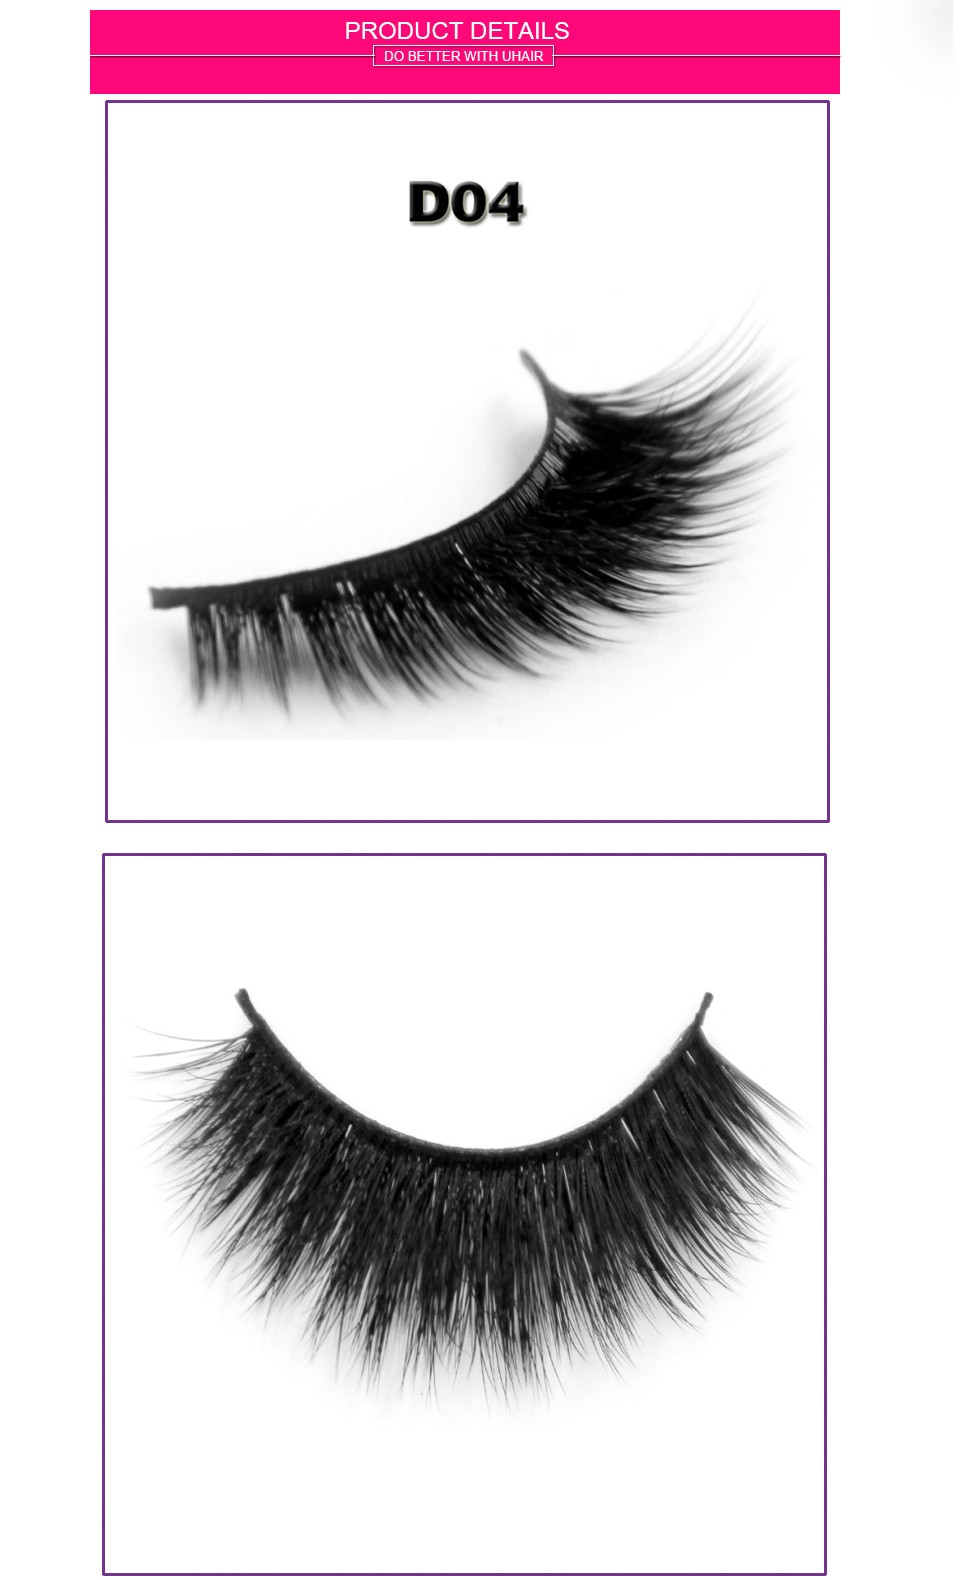 Mink material and hand made type 3d false eyelash custom package